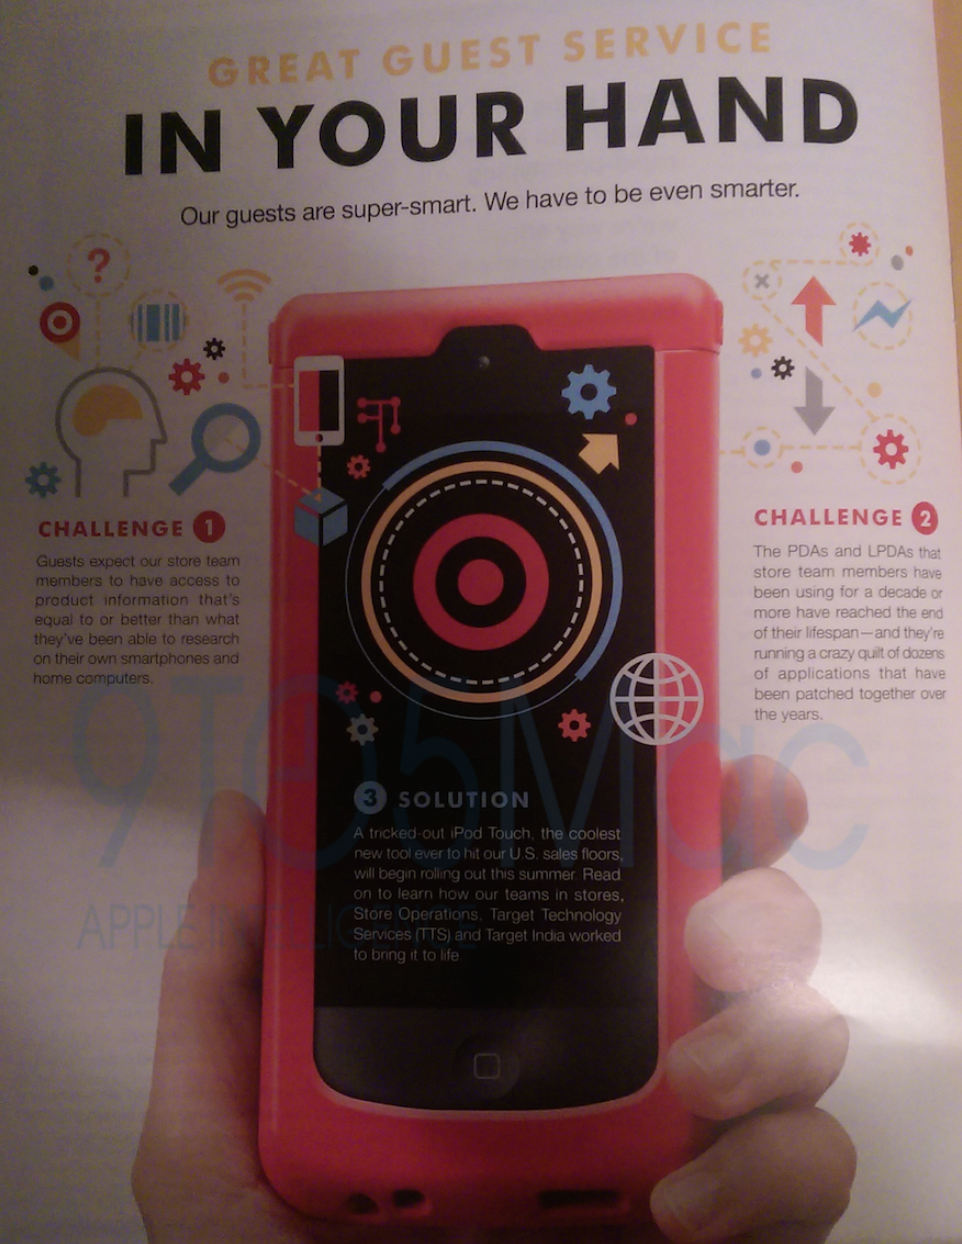 Target replacing employee PDAs with iPod touch this summer